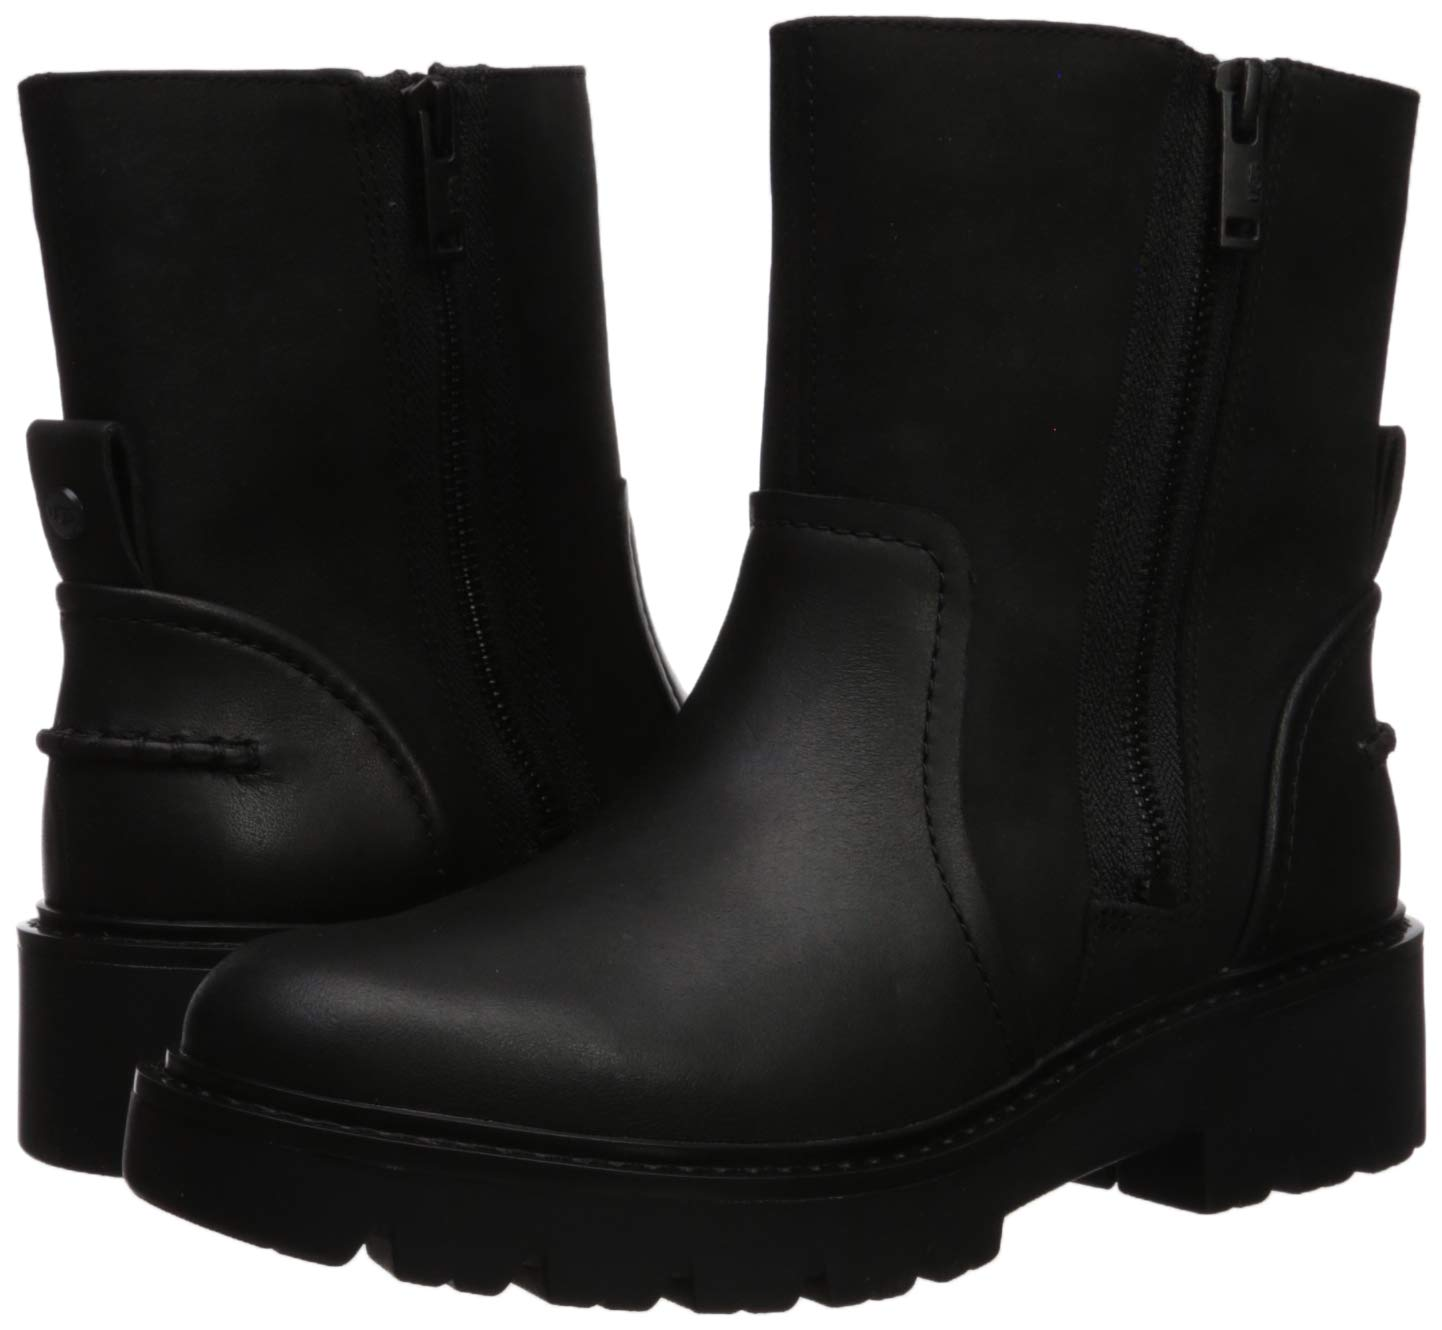 UGG Women's Polk Combat Boot, Black, 7.5 M US 6